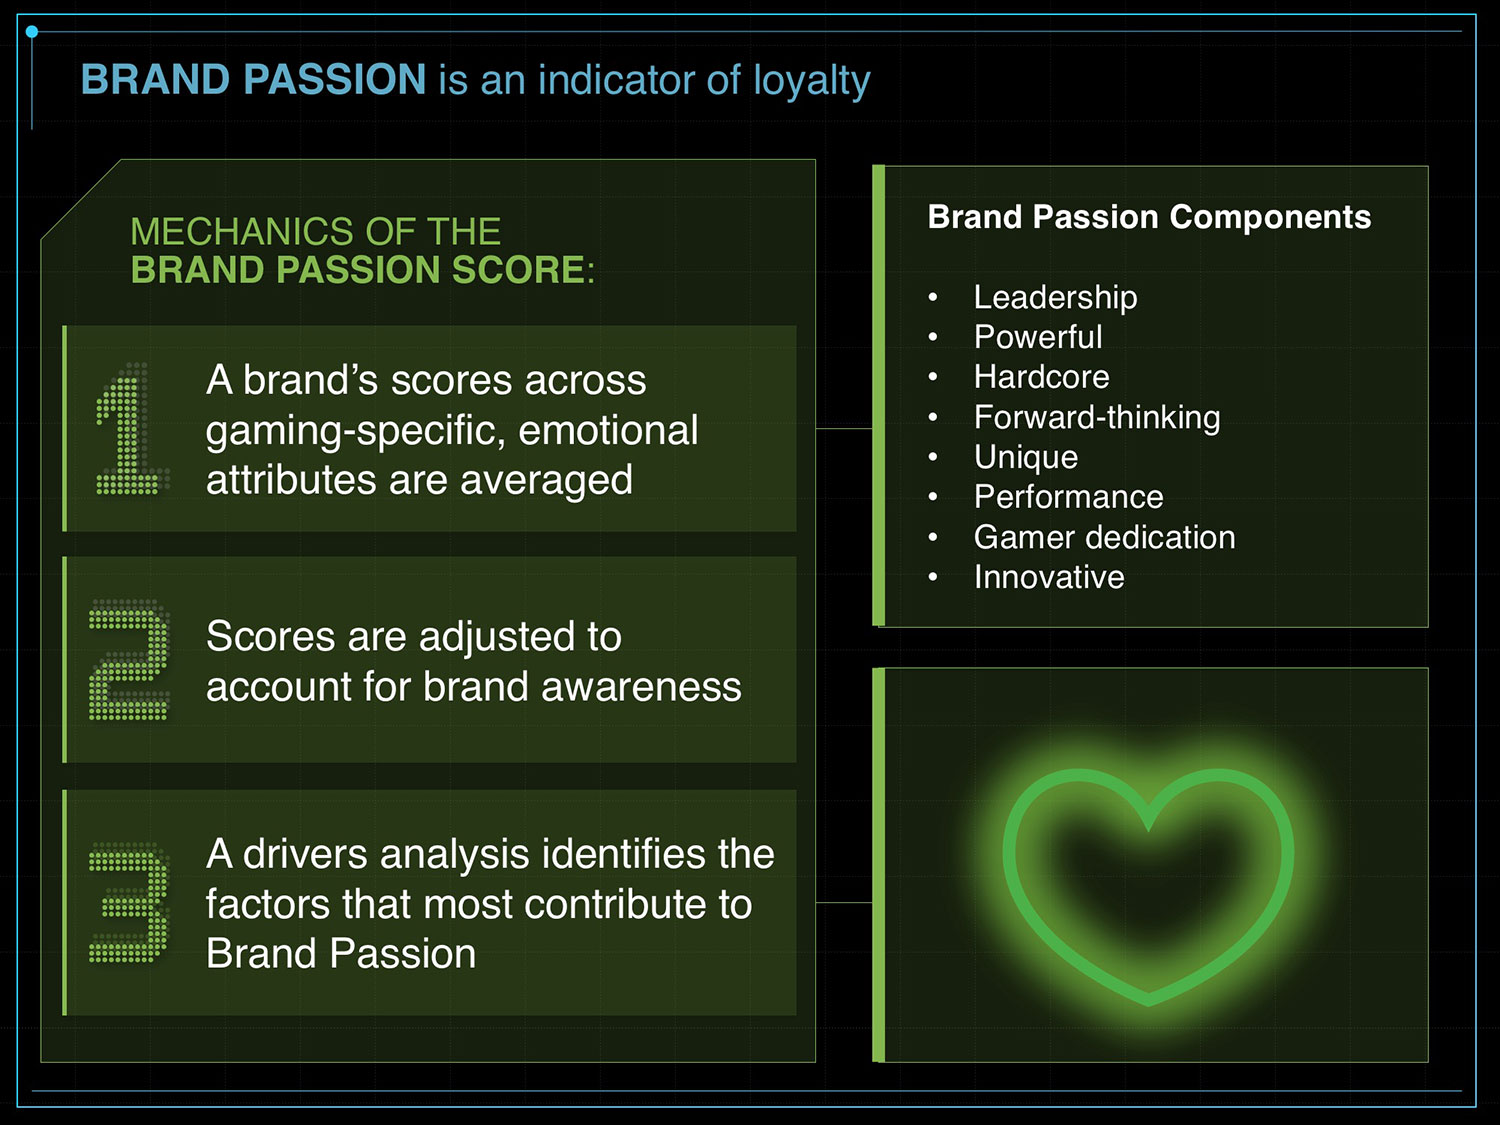 Brand Passion is an indicator of loyalty - Custom Brand Equity Measurement